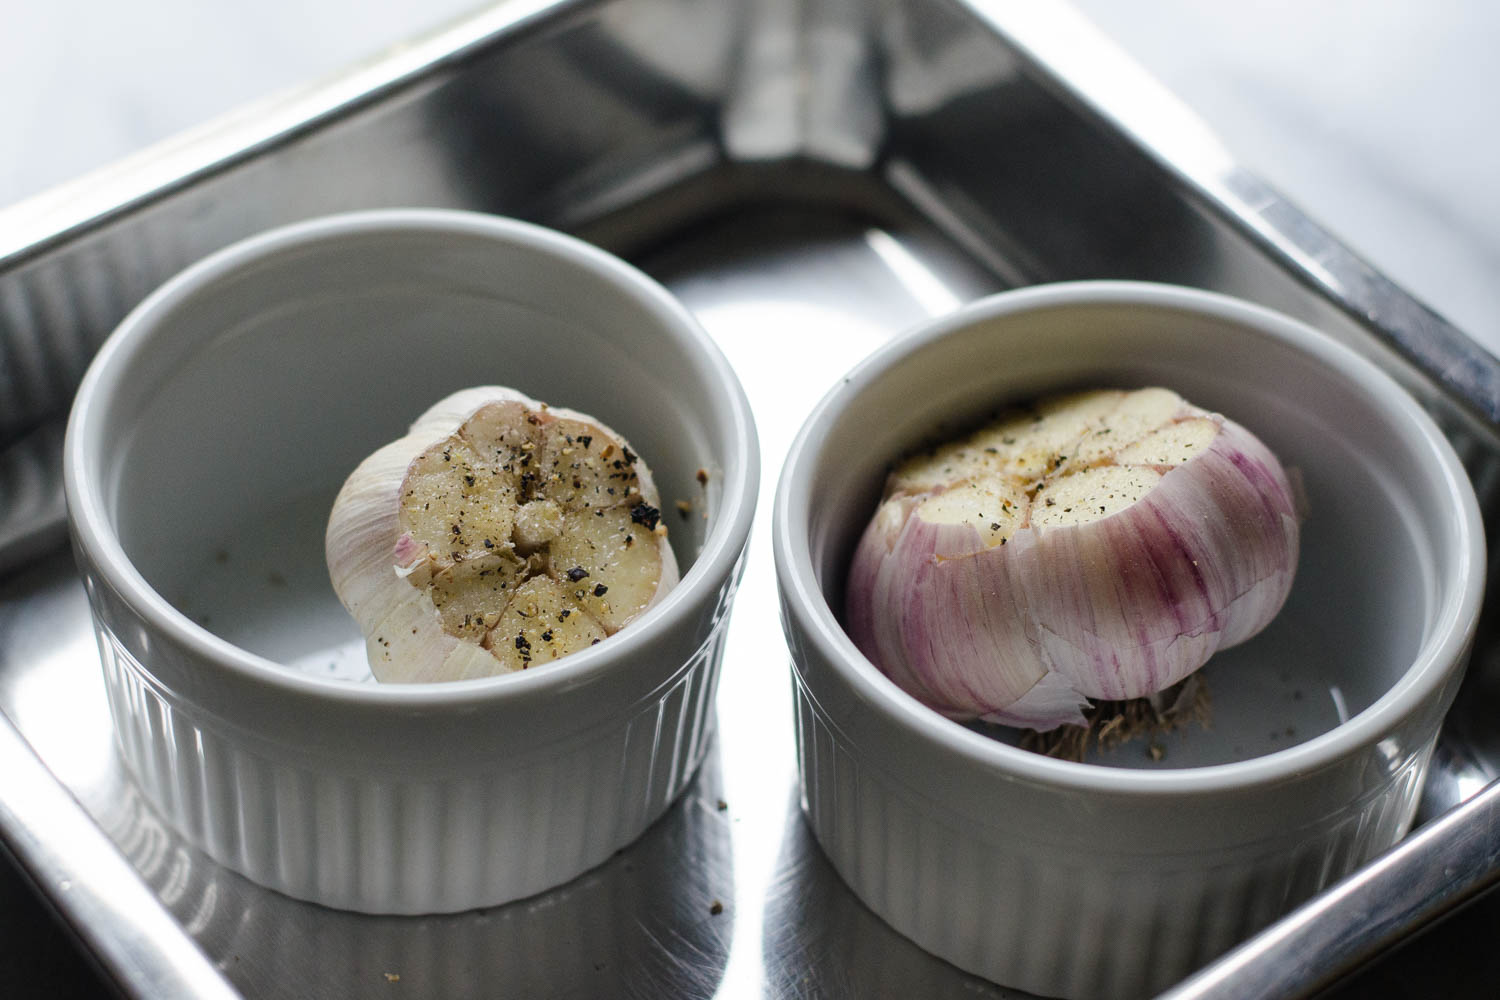 How to Roast Garlic Without Aluminum Foil - Learn how to easily roast garlic without wrapping it in aluminum foil!